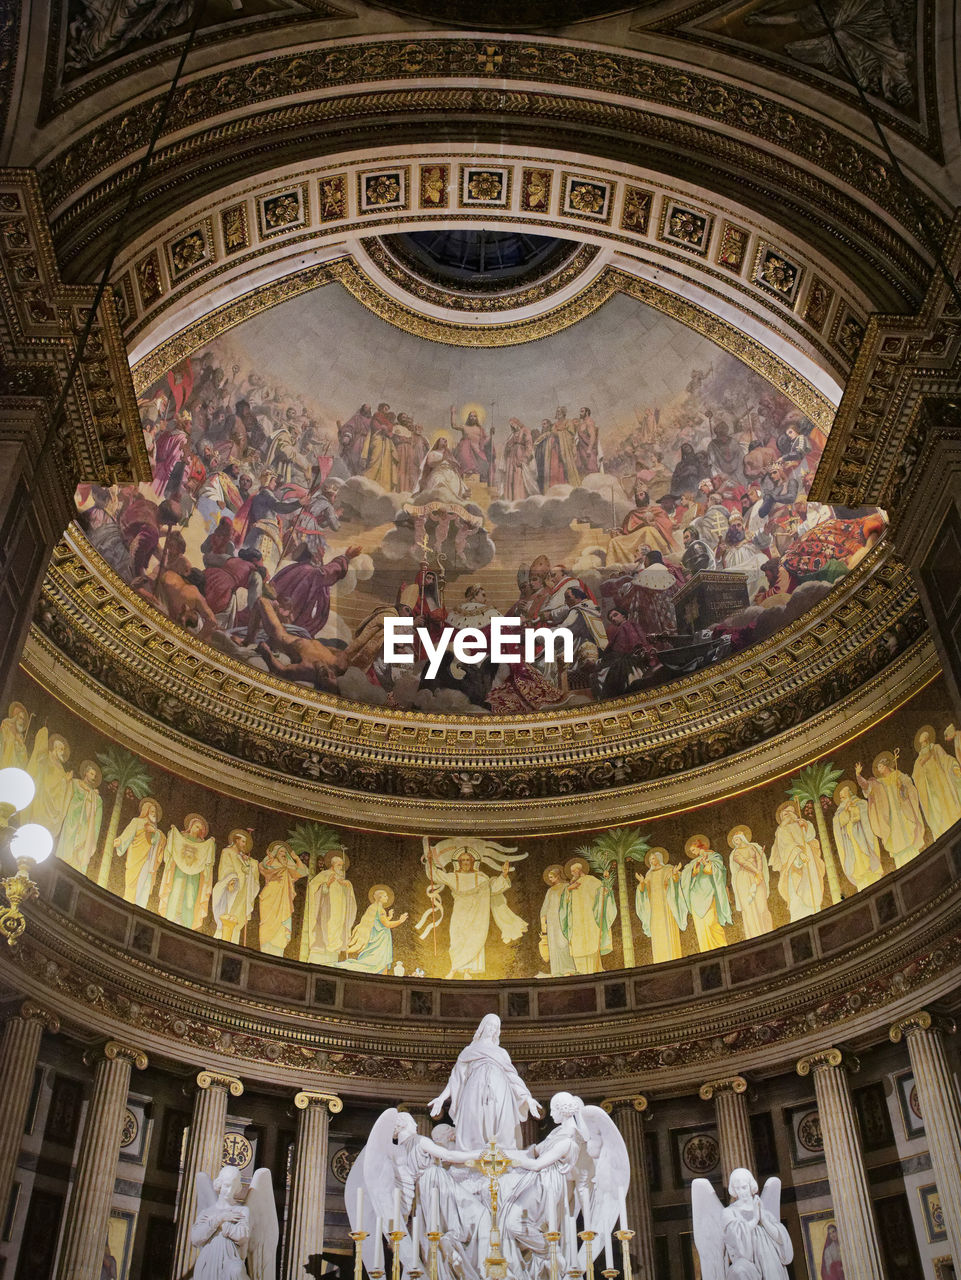 architecture, representation, built structure, low angle view, art and craft, human representation, travel destinations, craft, indoors, male likeness, sculpture, statue, dome, the past, female likeness, history, creativity, ceiling, no people, mural, ornate, architectural column, fresco, government